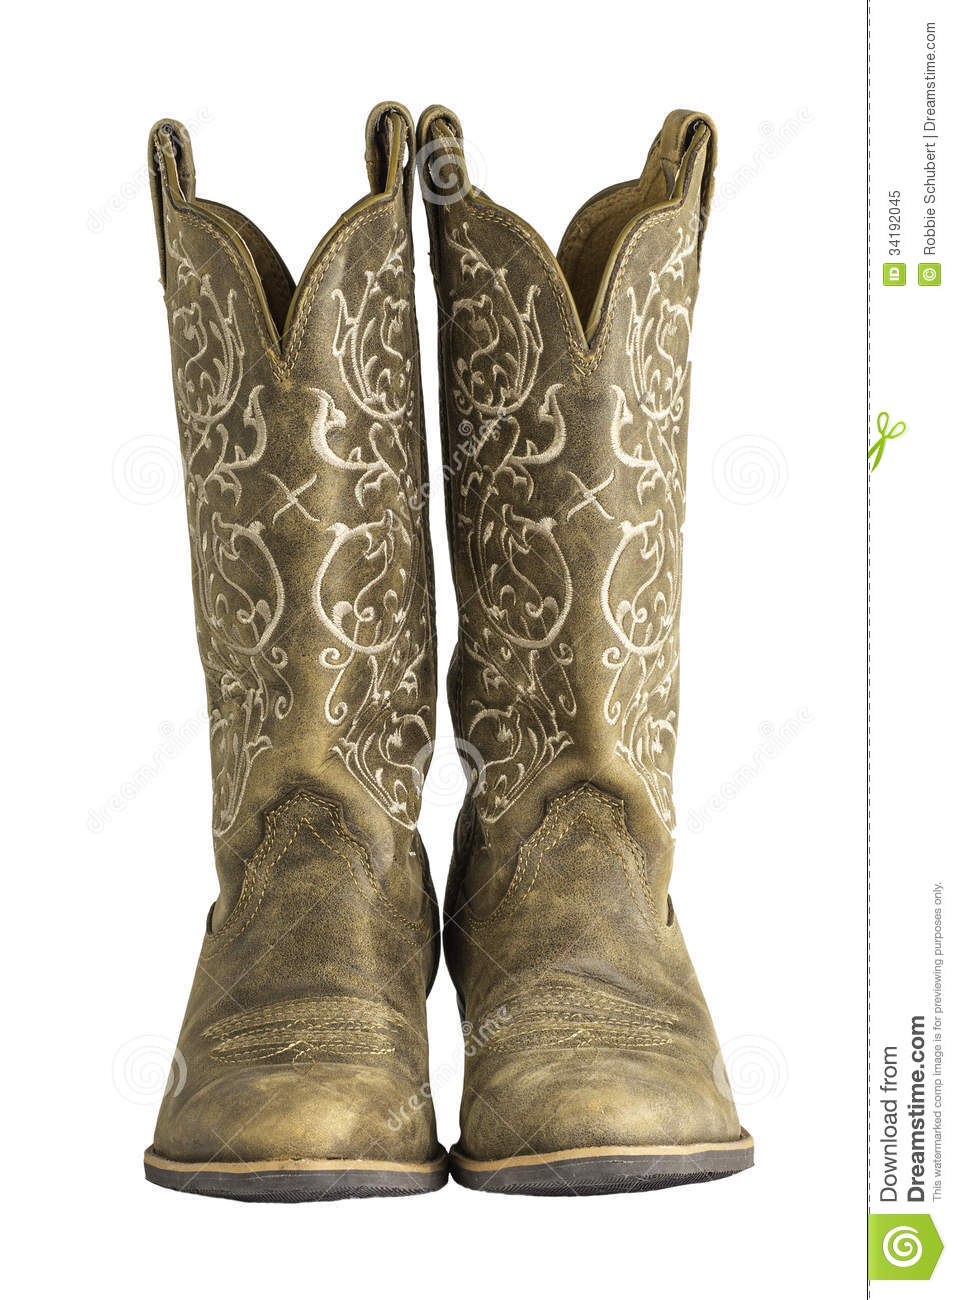 Ladies Brown Western Cowboy Boots Royalty Free Stock Photo - Image ...